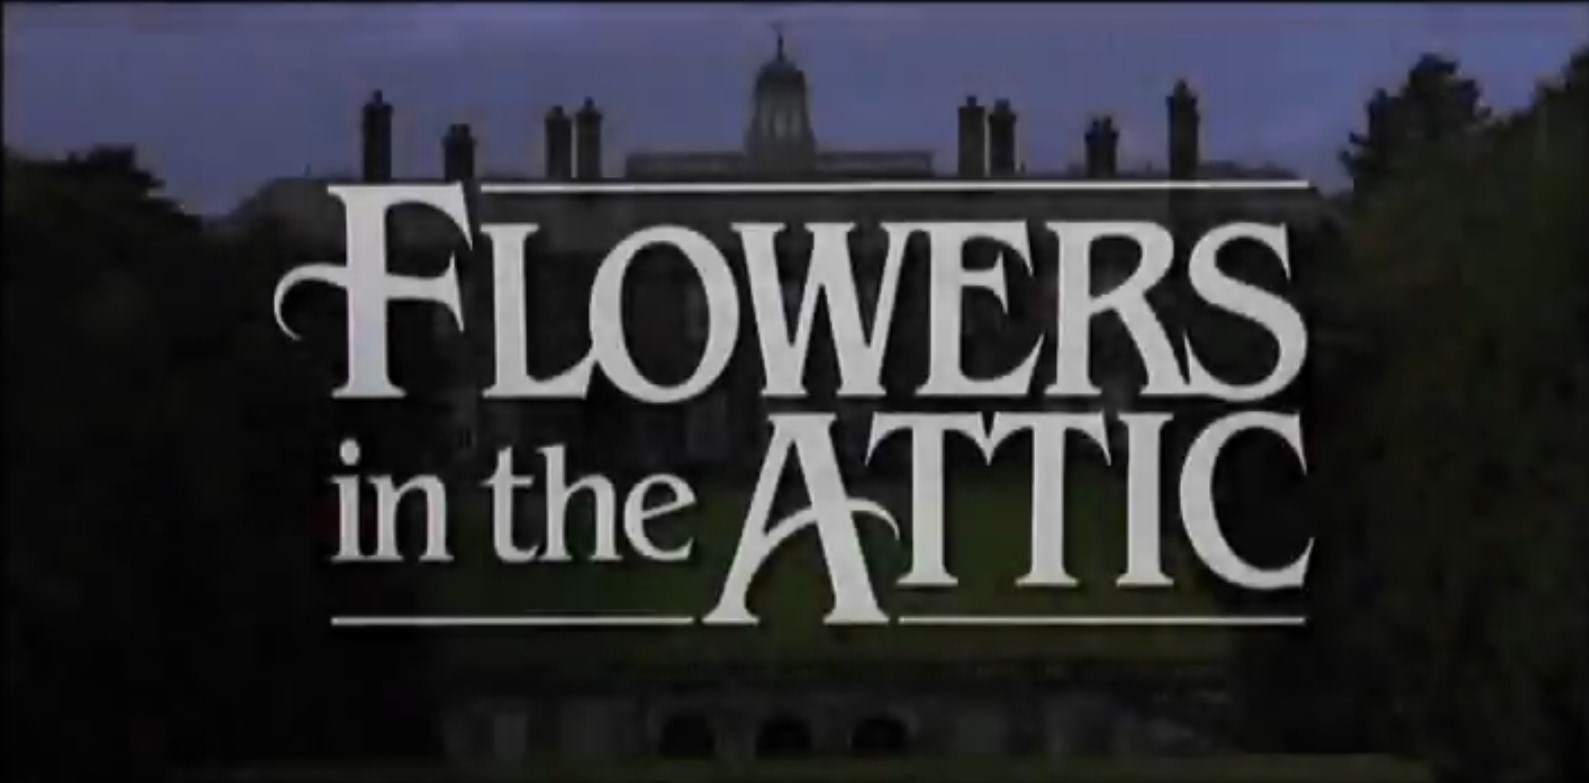 flowers in the attic whipping scene